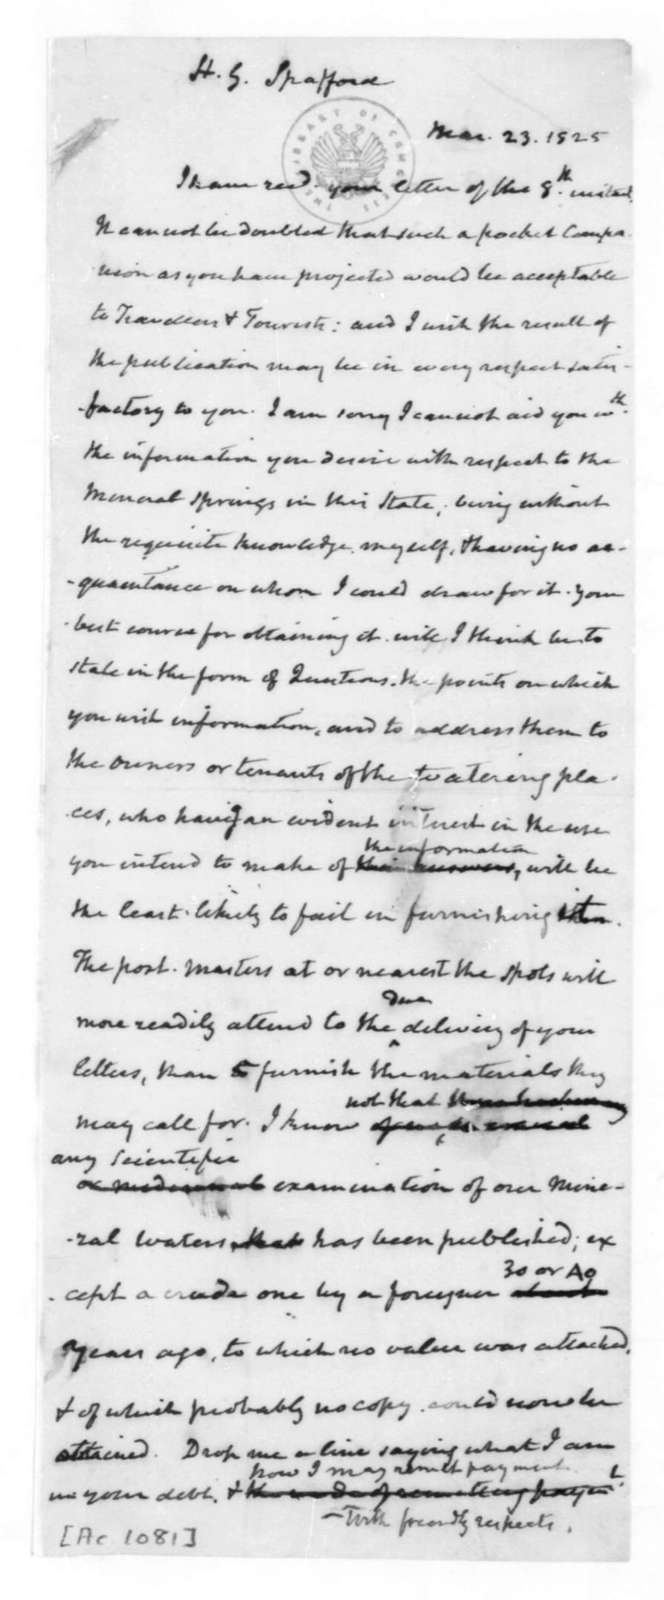 James Madison to Horatio Gates Spafford, March 23, 1825.